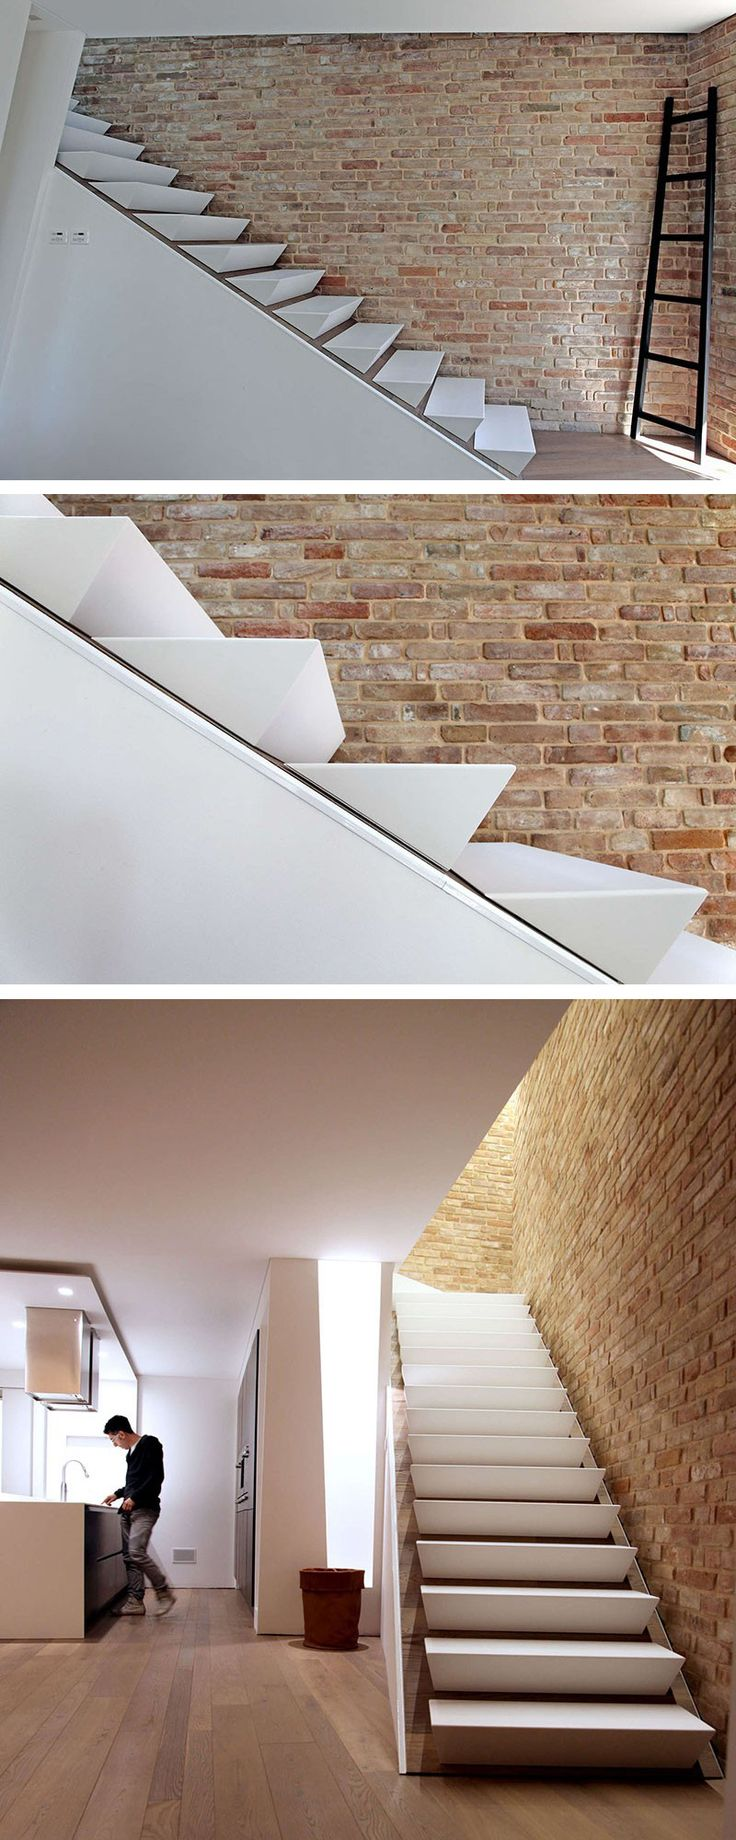 DESIGN DETAIL // Wedge Shaped Stairs